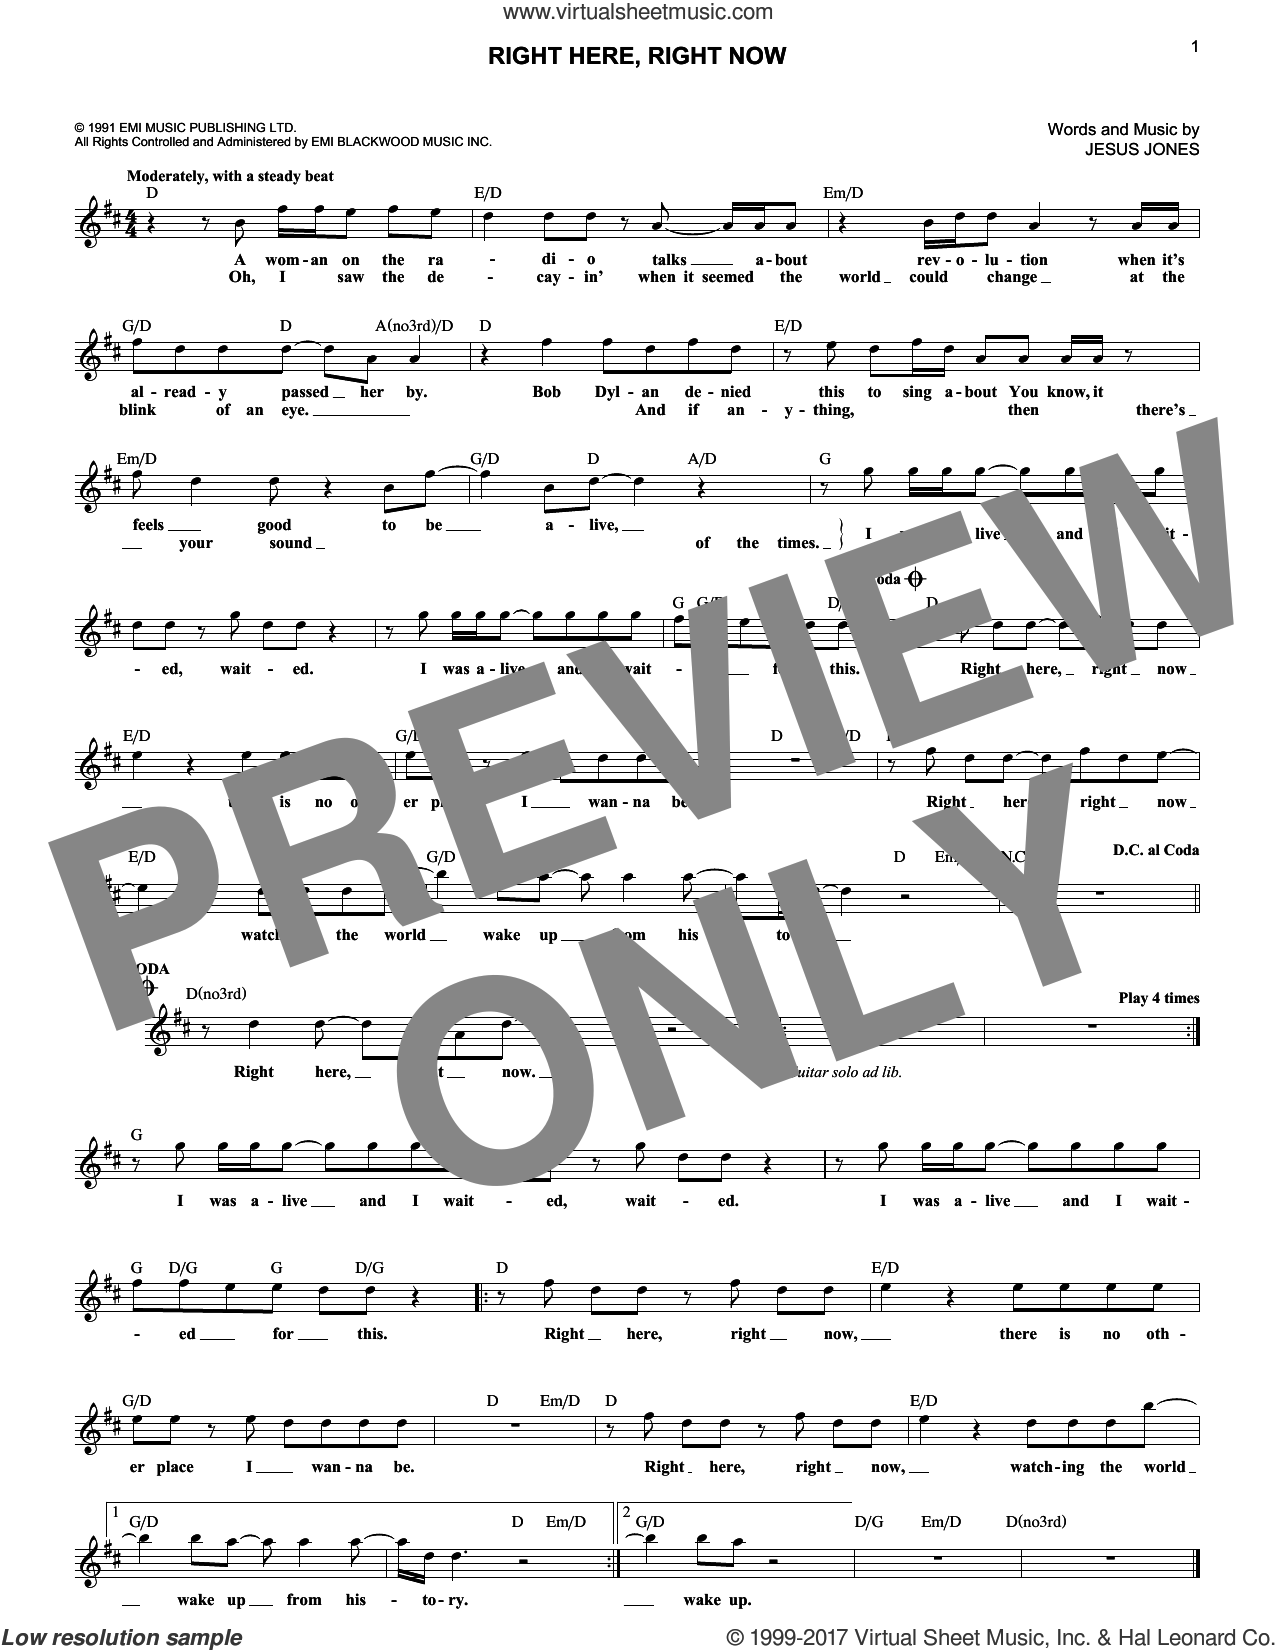 Right Here, Right Now sheet music for voice and other instruments (fake book) by Jesus Jones, intermediate skill level